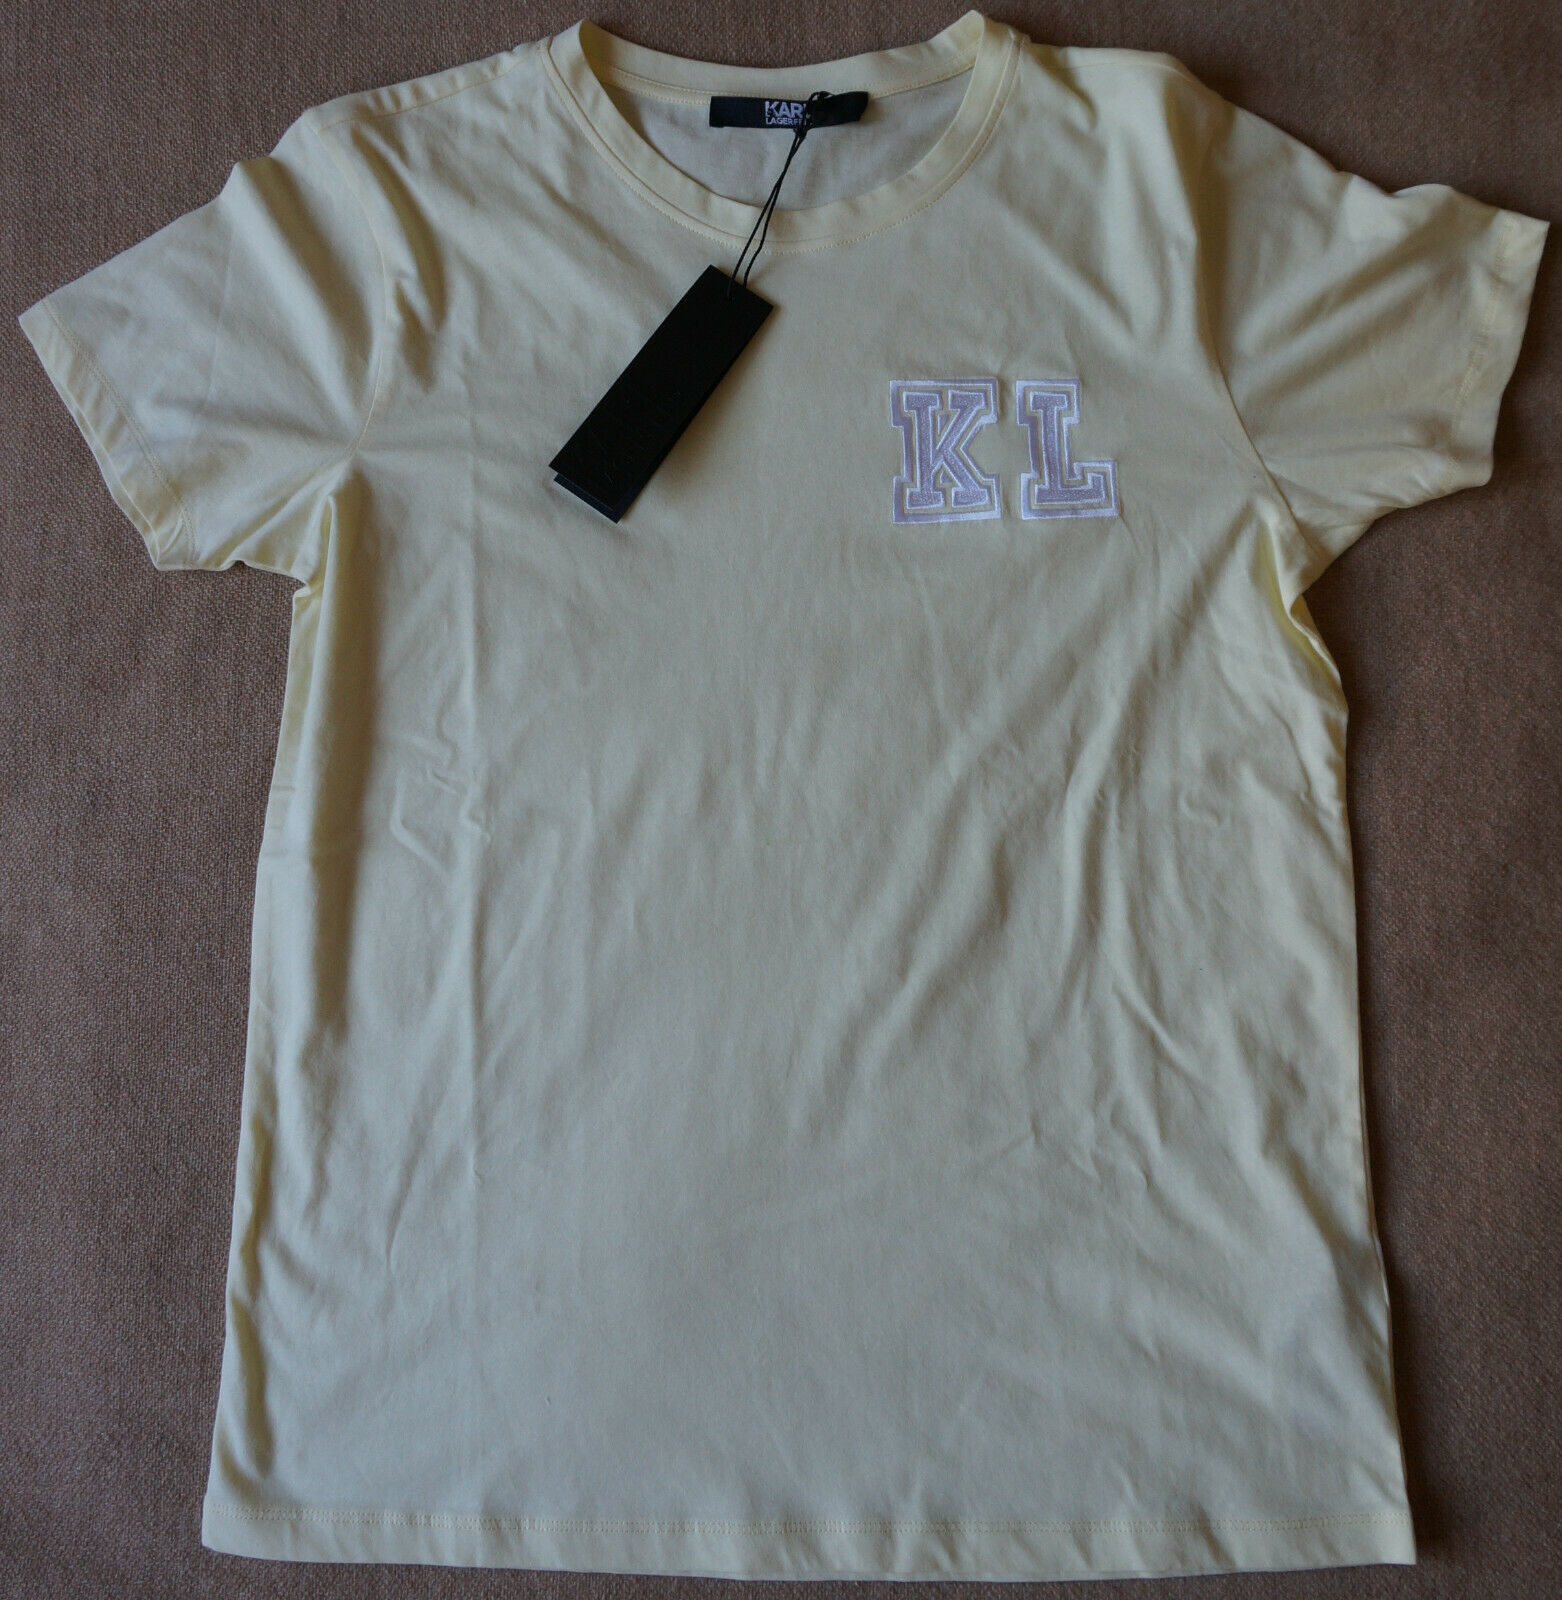 Karl Lagerfeld KL Embroidery Tee T-Shirt M Pastell Gelb 1A-Zustand P V1.